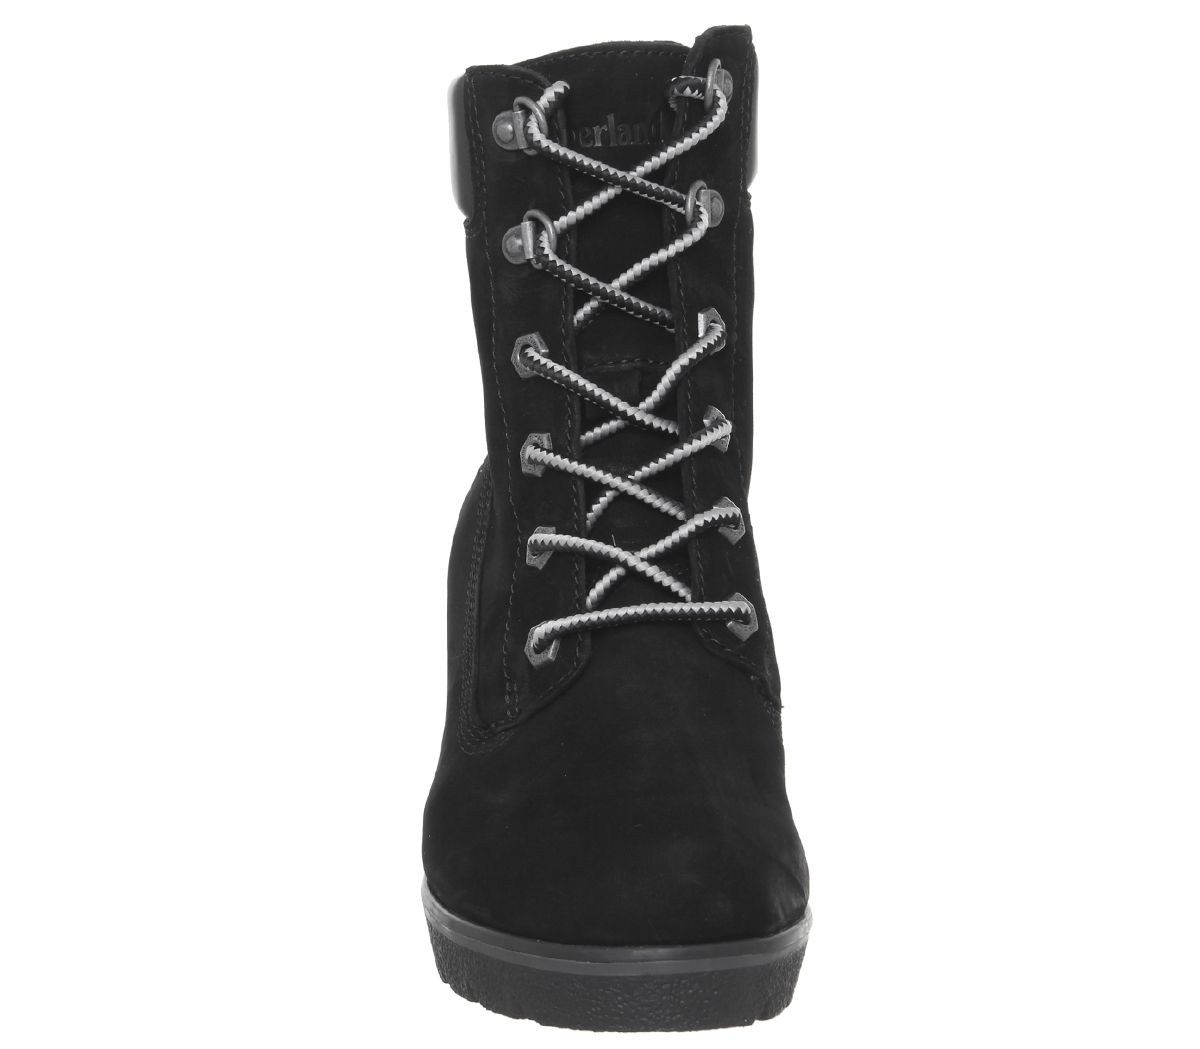 0cb7c016cd96 Timberland Paris Height 6 Inch Wedge Boots Black - Womens Boots